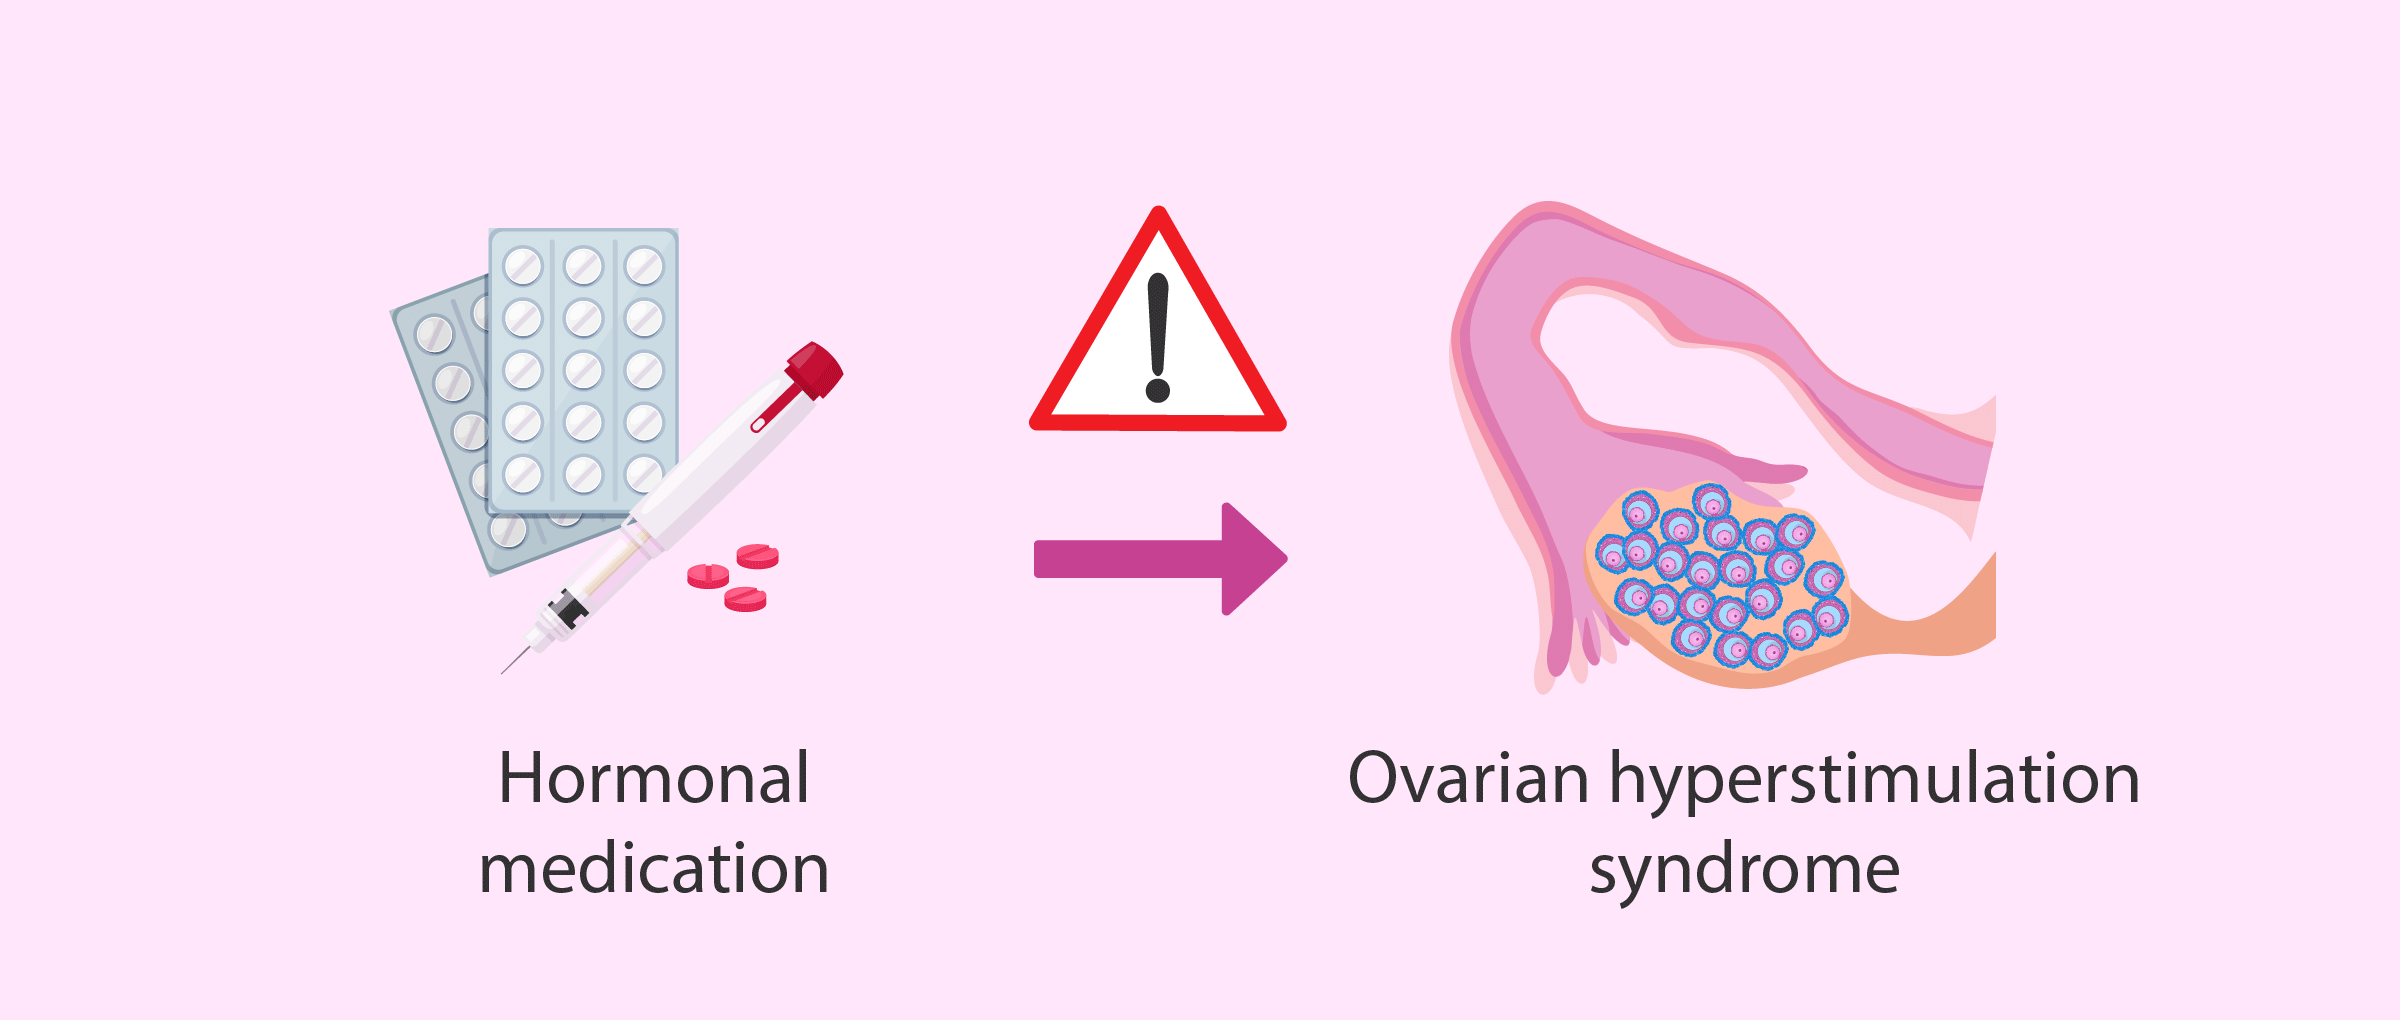 Ovarian hyperstimulation syndrome (OHSS)